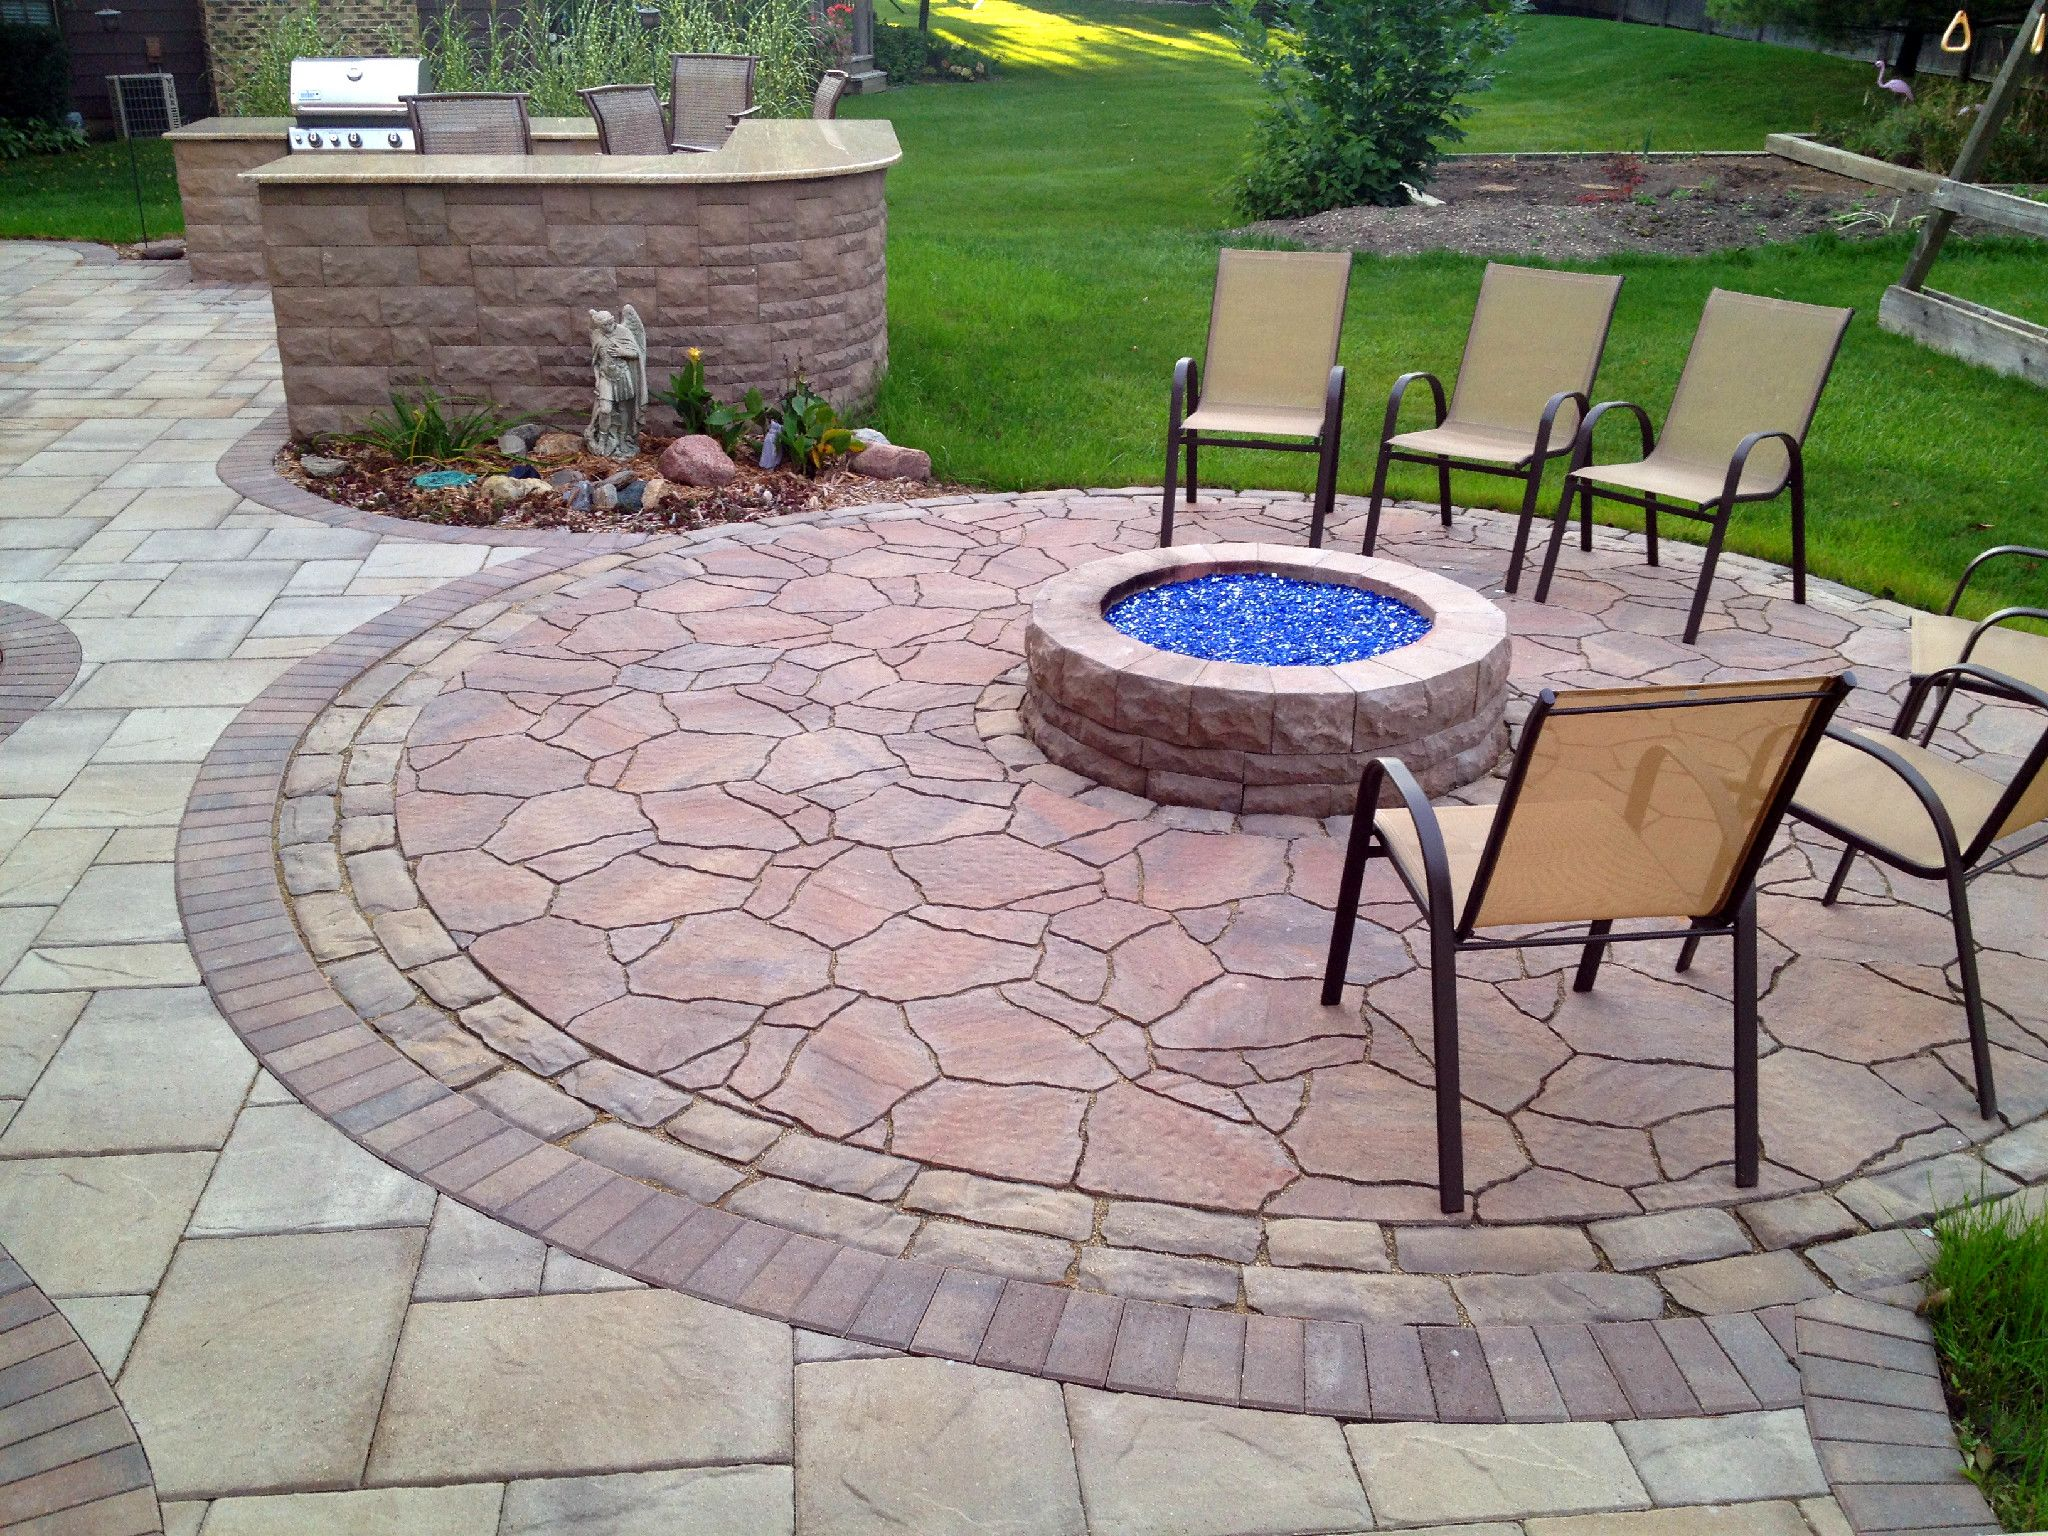 Patio Design With Outdoor Kitchen And Gas Fire Pit By Palatine, IL Patio  Builder